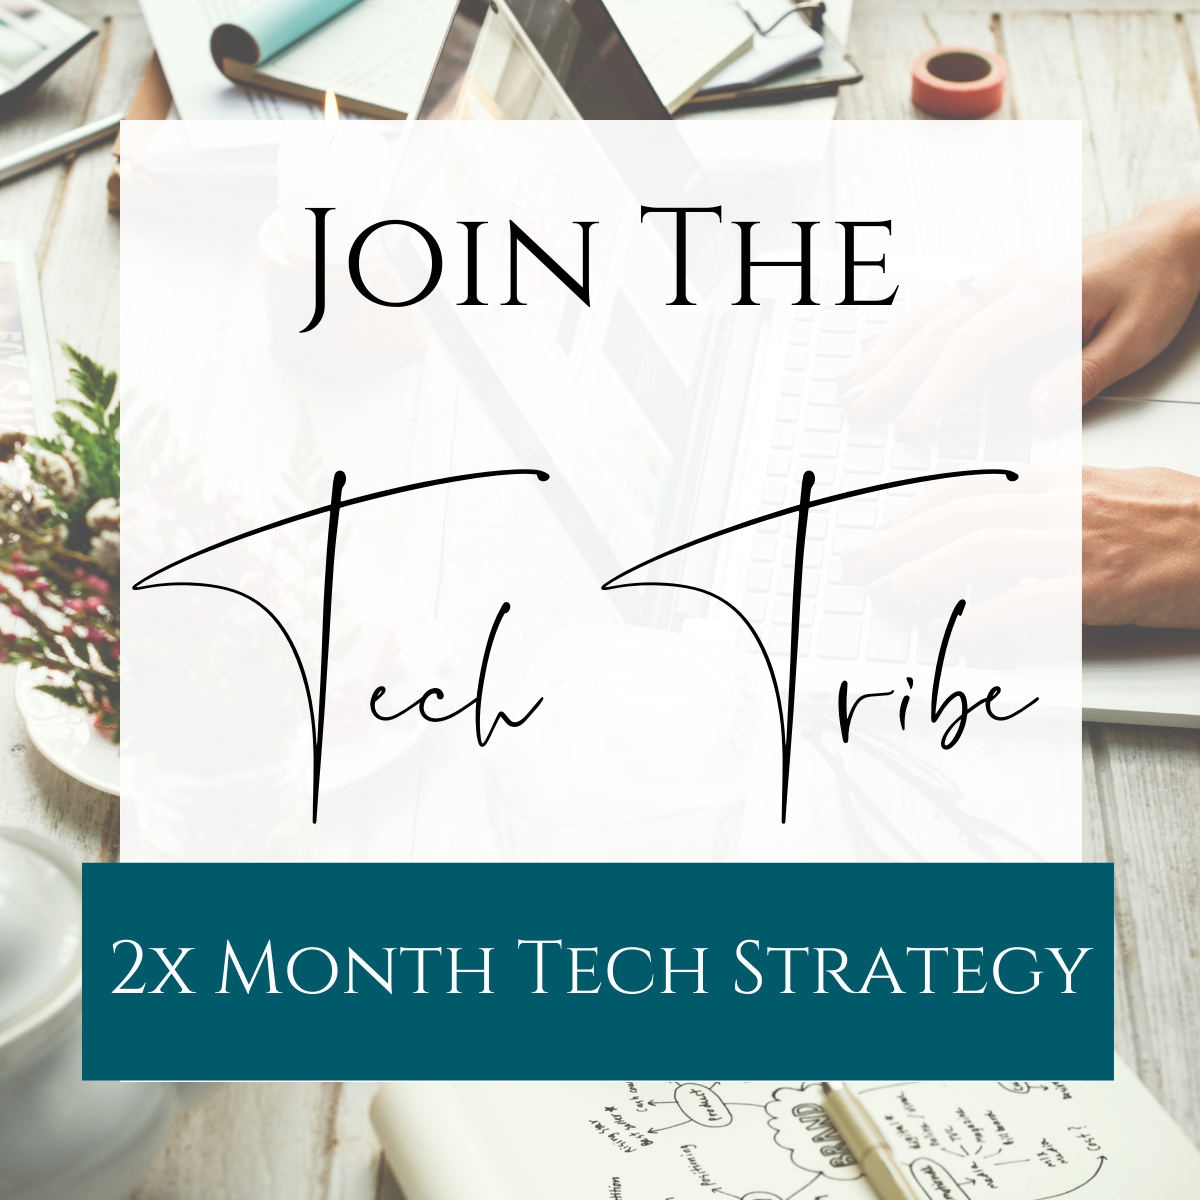 Join The Tech Tribe